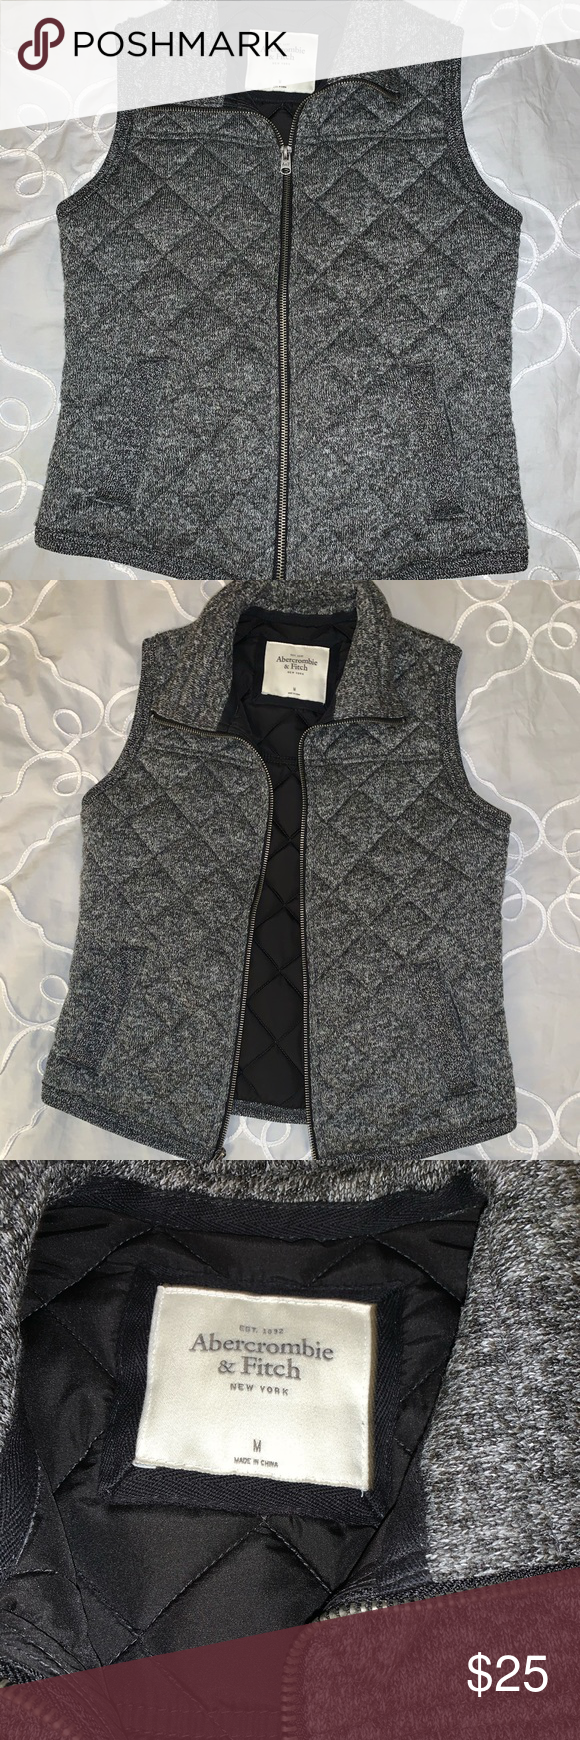 Abercrombie and fitch grey quilted vest ✨ EXCELLENT CONDITION worn maybe 1 or ...#abercrombie #condition #excellent #fitch #grey #quilted #vest #worn